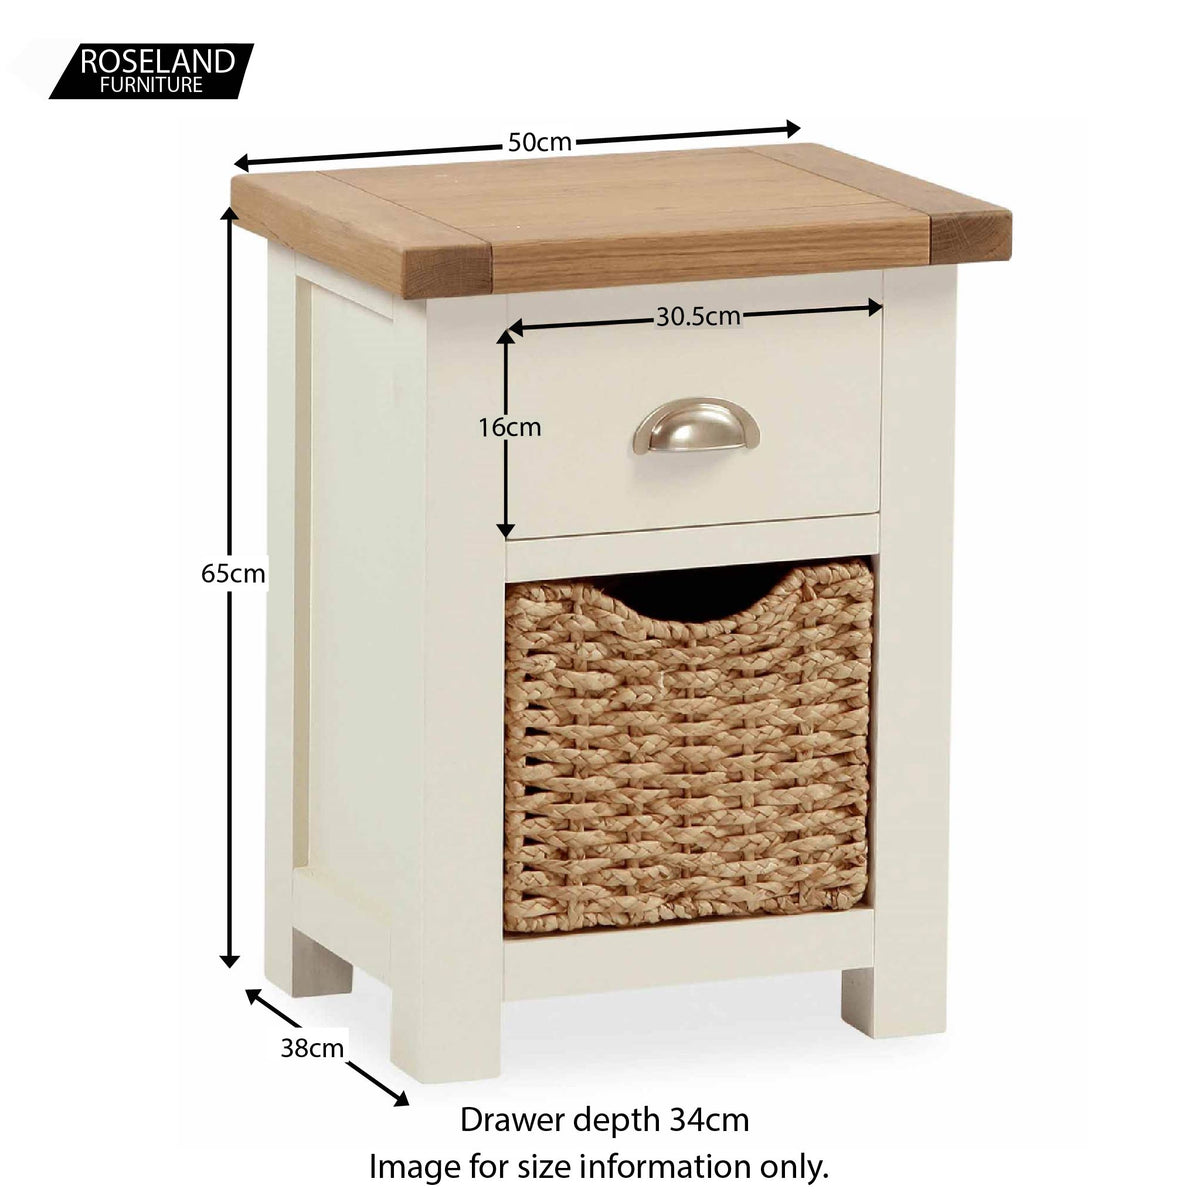 Daymer Cream  Bedside Table with Basket - Size Guide